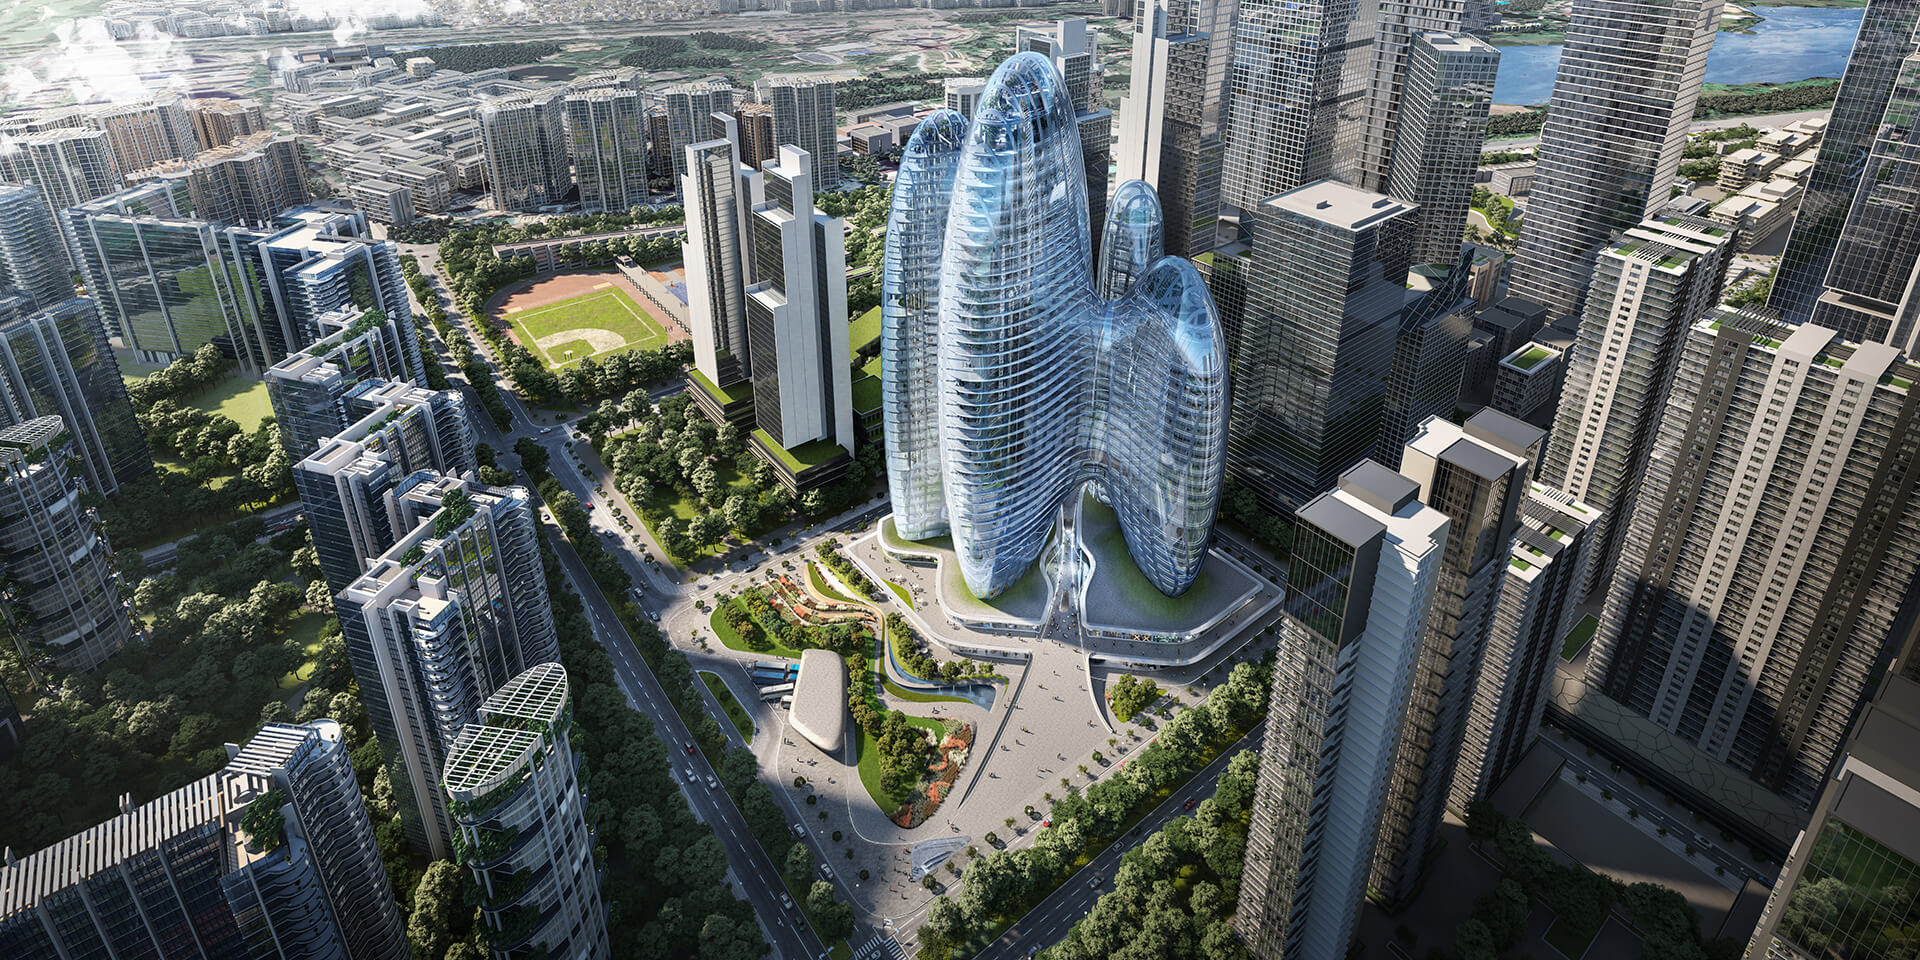 Two of the four towers house open-plan areas, while the others will function as service towers | OPPO Headquarters | Zaha Hadid Architects | STIRworld